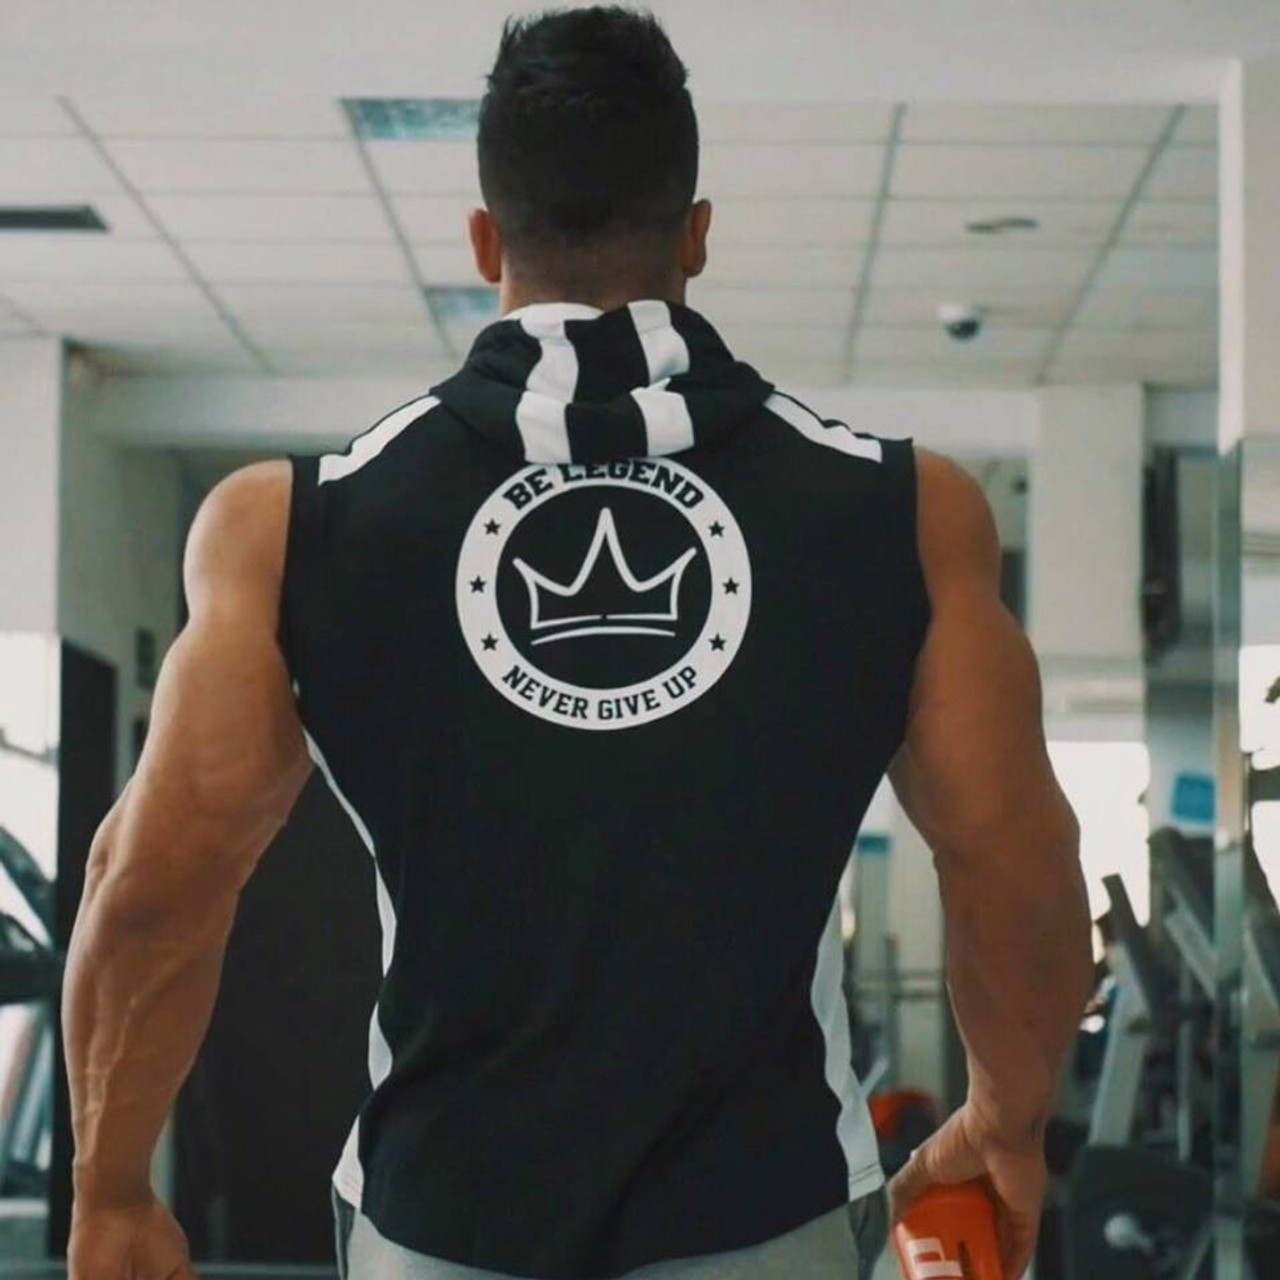 e22860ea ... SJ 2017 Fitness Men Bodybuilding Sleeveless Muscle Hoodies Workout  Clothes Casual Cotton Tops Hooded Tank Tops ...